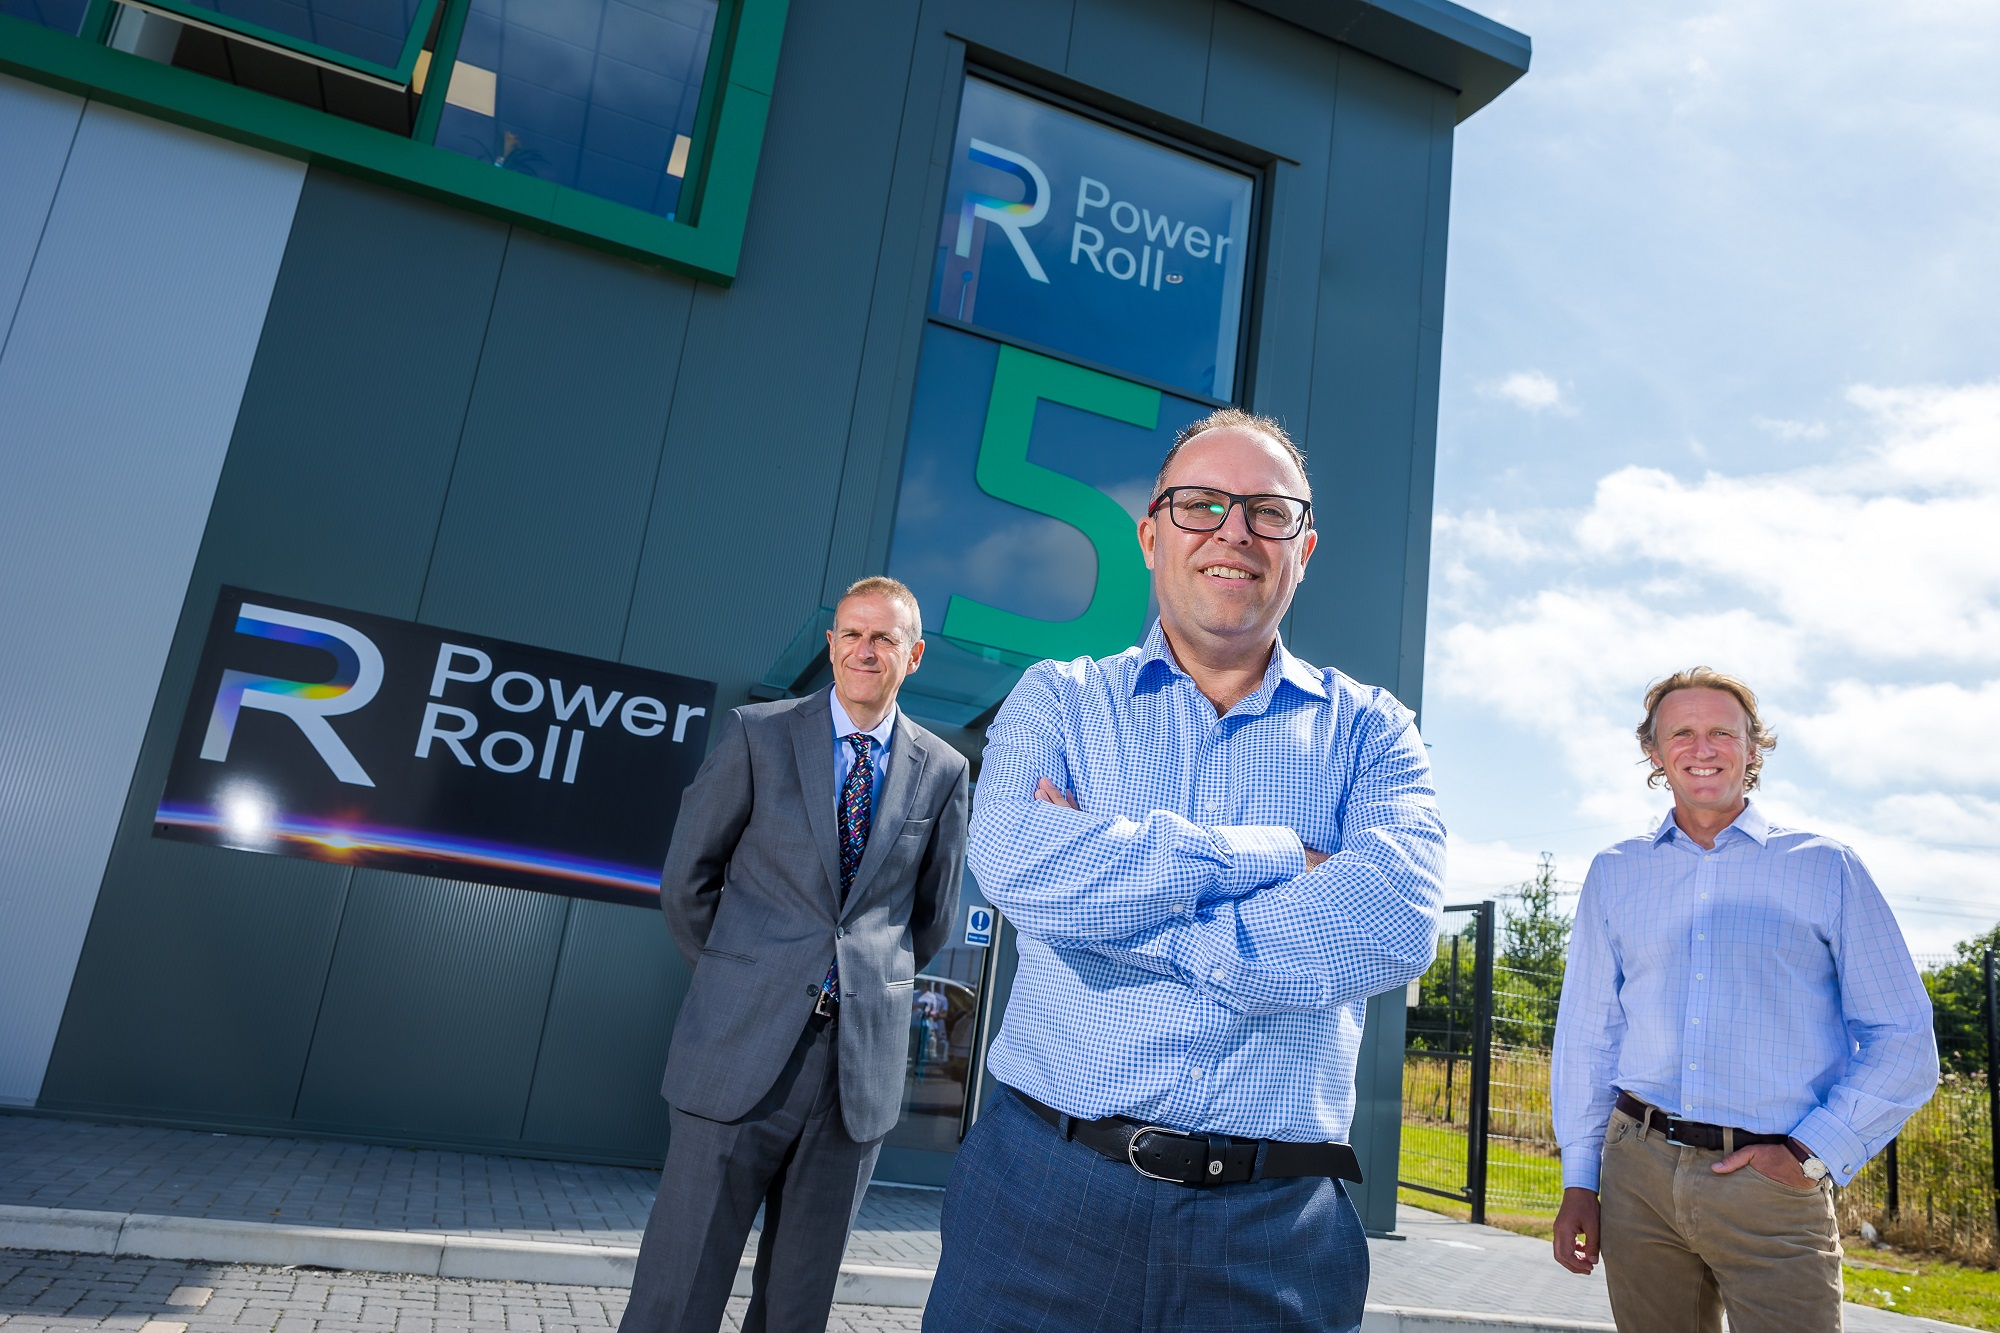 (l to r) Peter Rippingale Business Durham, Neil Spann, Chief Executive, Power Roll and Nick Atkinson HTA Real Estate